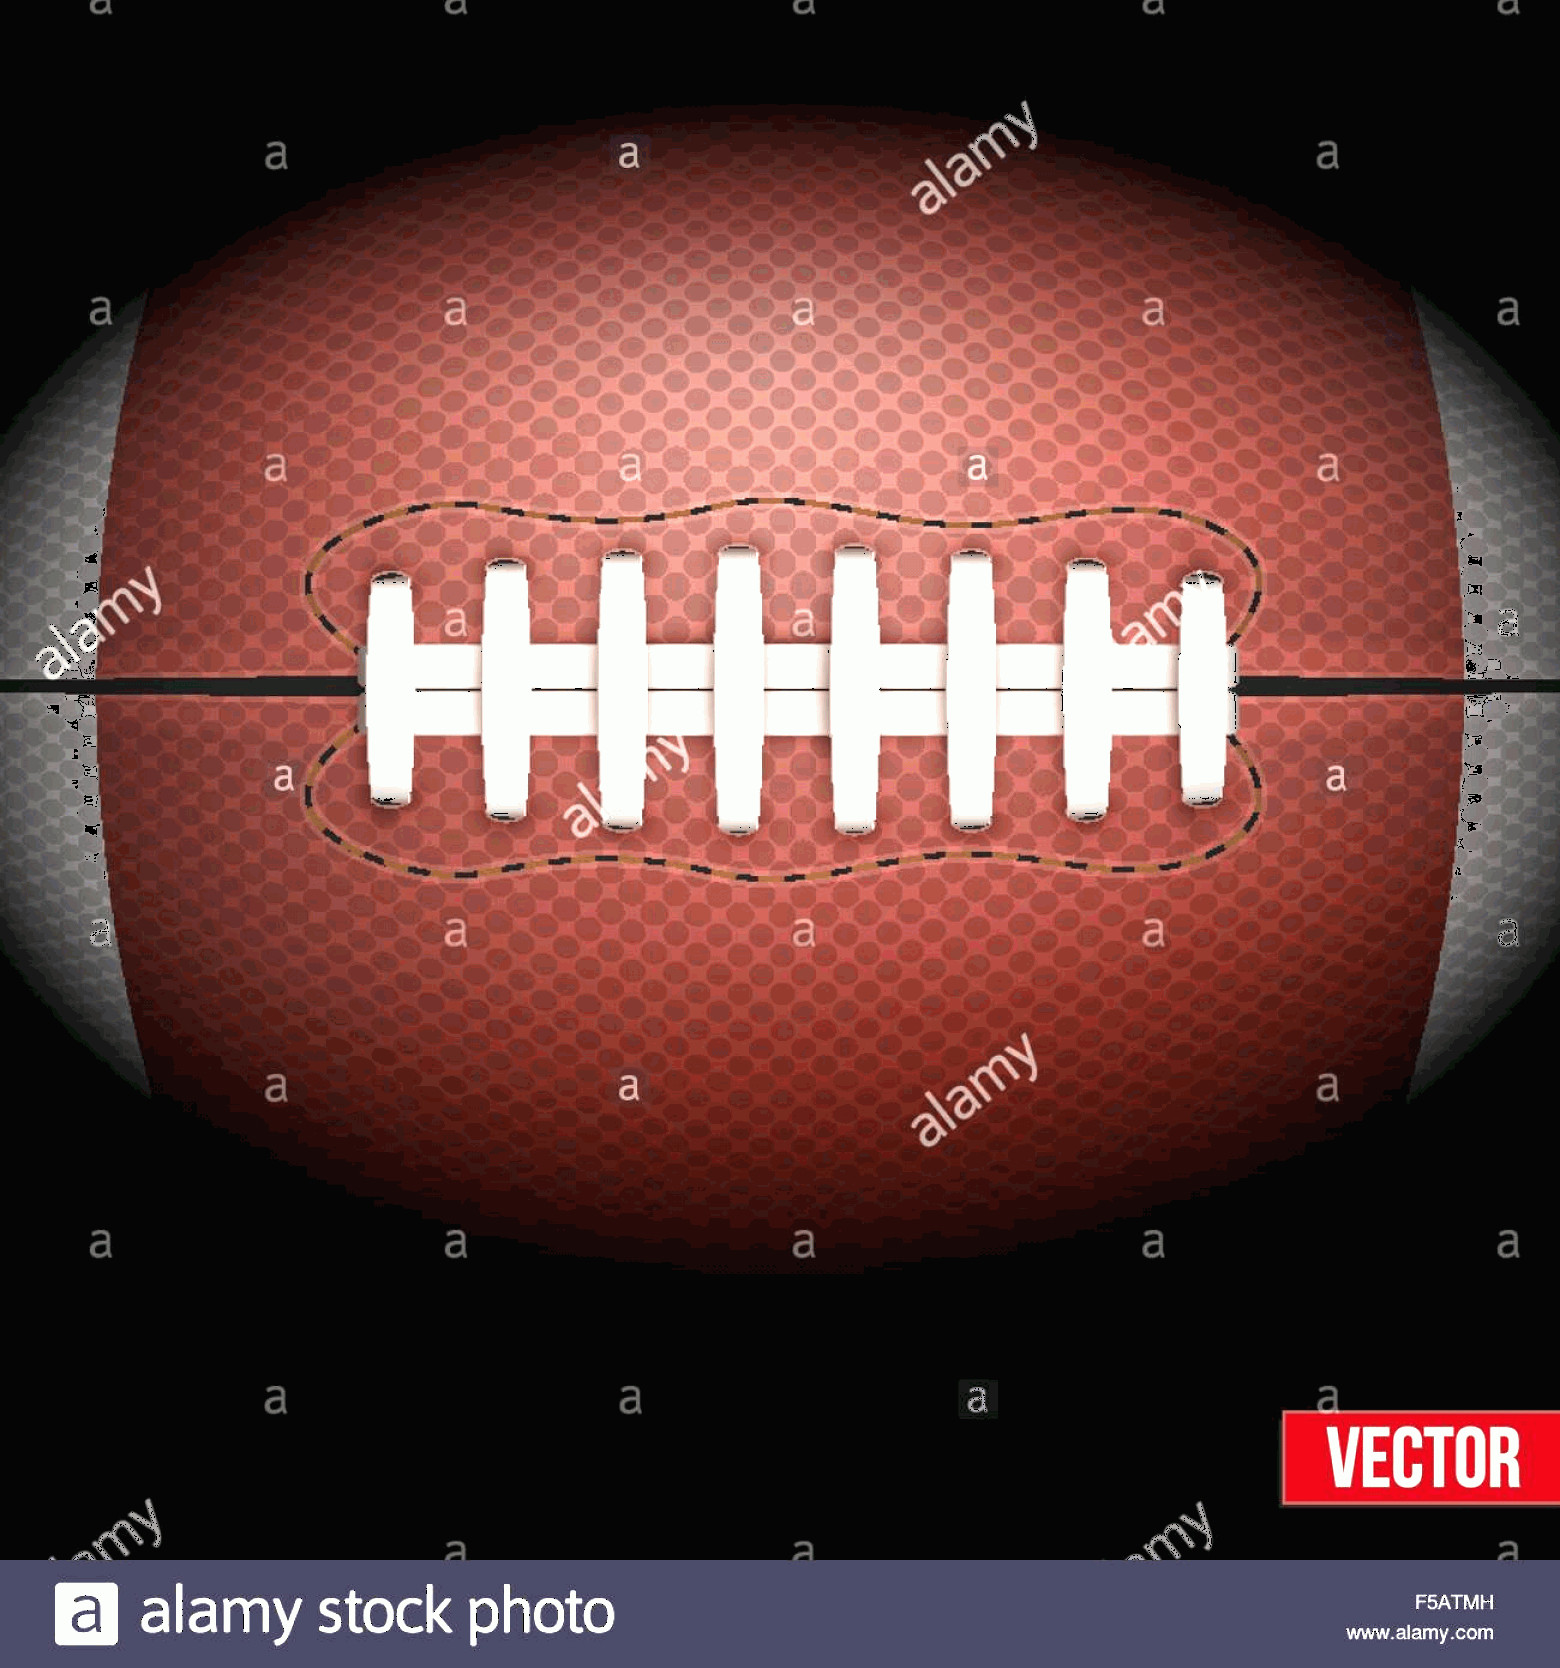 Football Laces Vector Silhouette: Stock Photo Background Of American Football Ball Vector